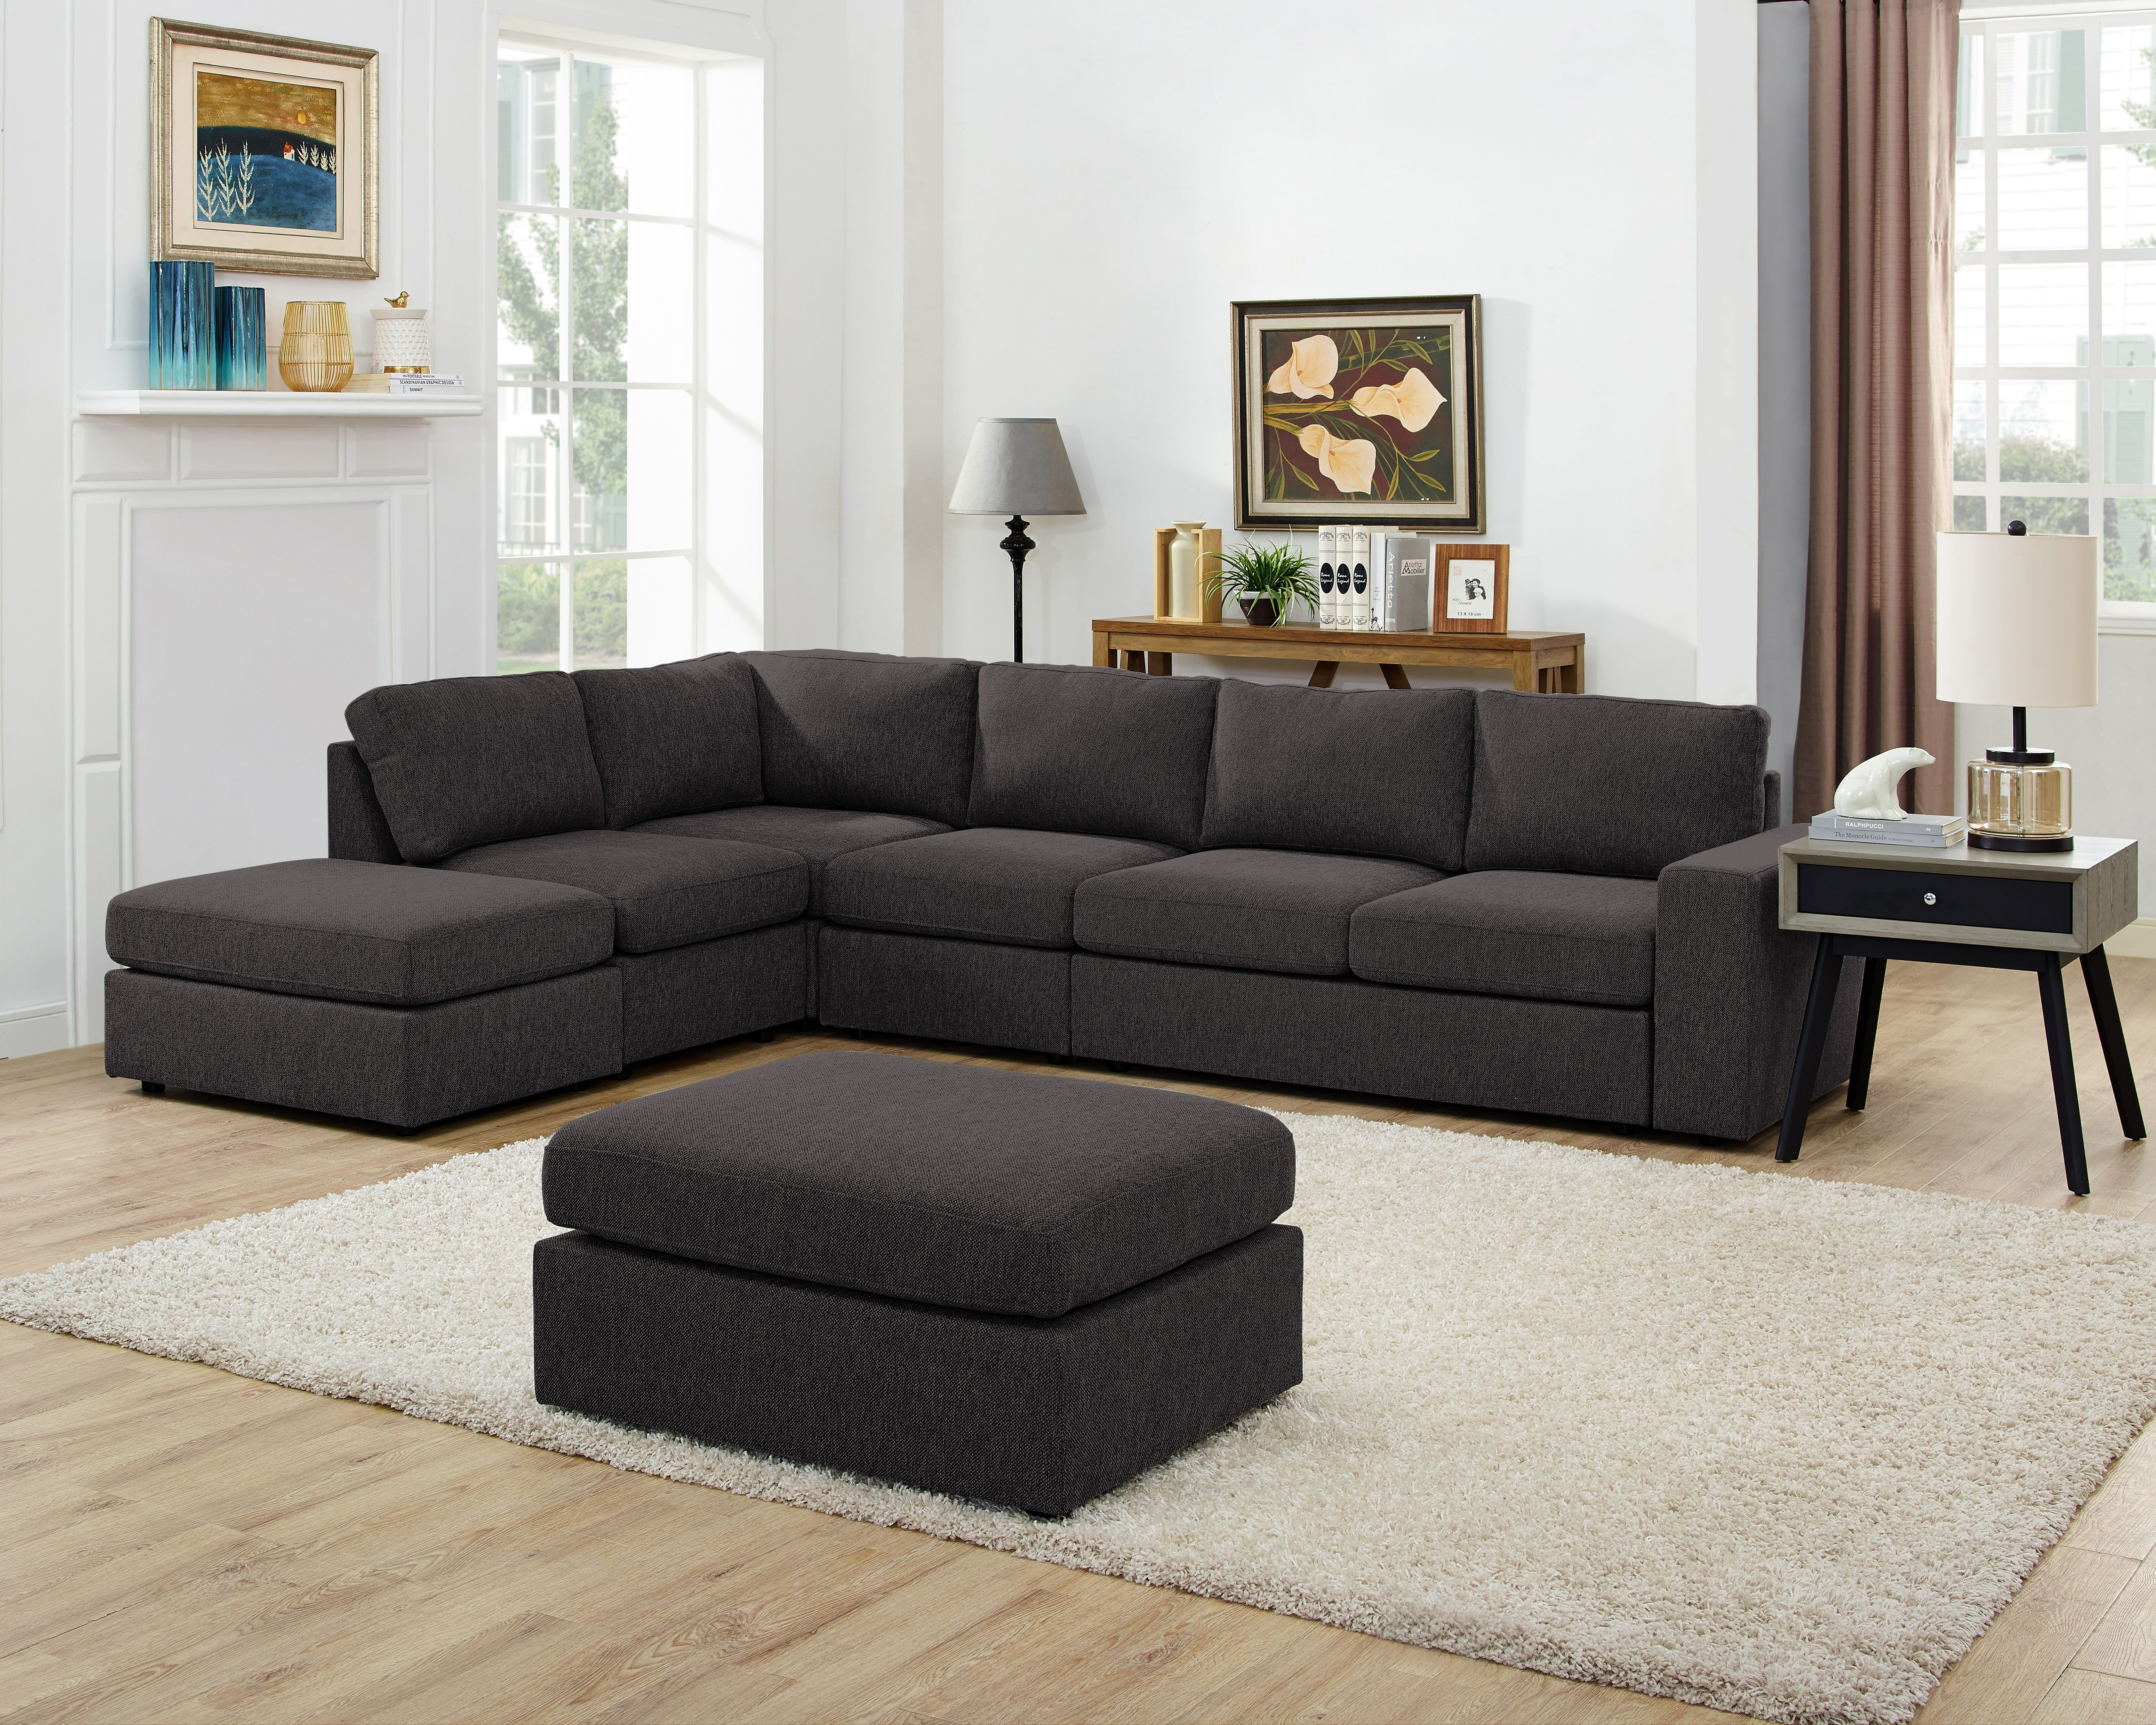 Stupendous Gosnell Modular Sectional With Ottoman Andrewgaddart Wooden Chair Designs For Living Room Andrewgaddartcom